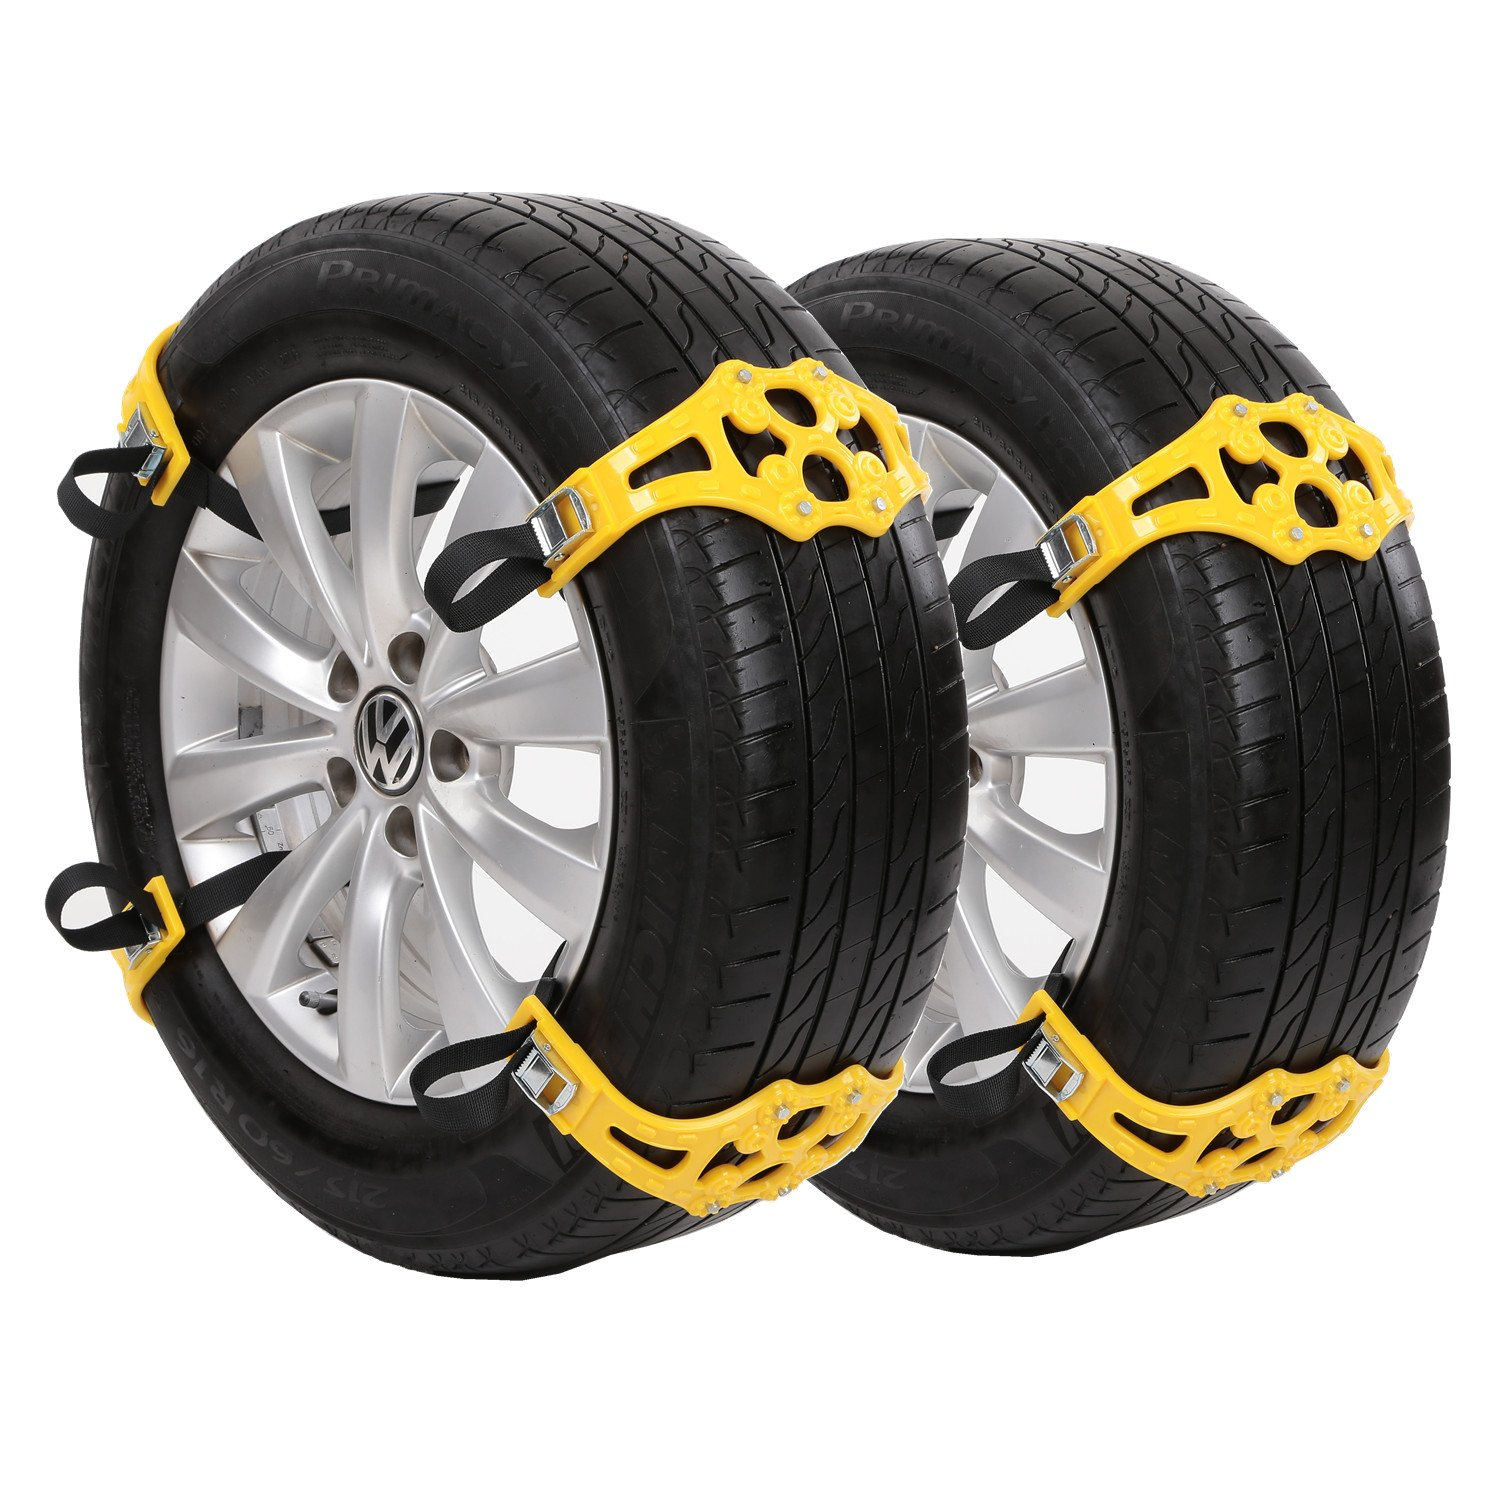 Sanku 2016 Upgraded Snow Tire Chains (スノー タイヤチェーン),Fits for Most Car/SUV/Truck-Set of 8 [並行輸入品] B01MQDXEHD